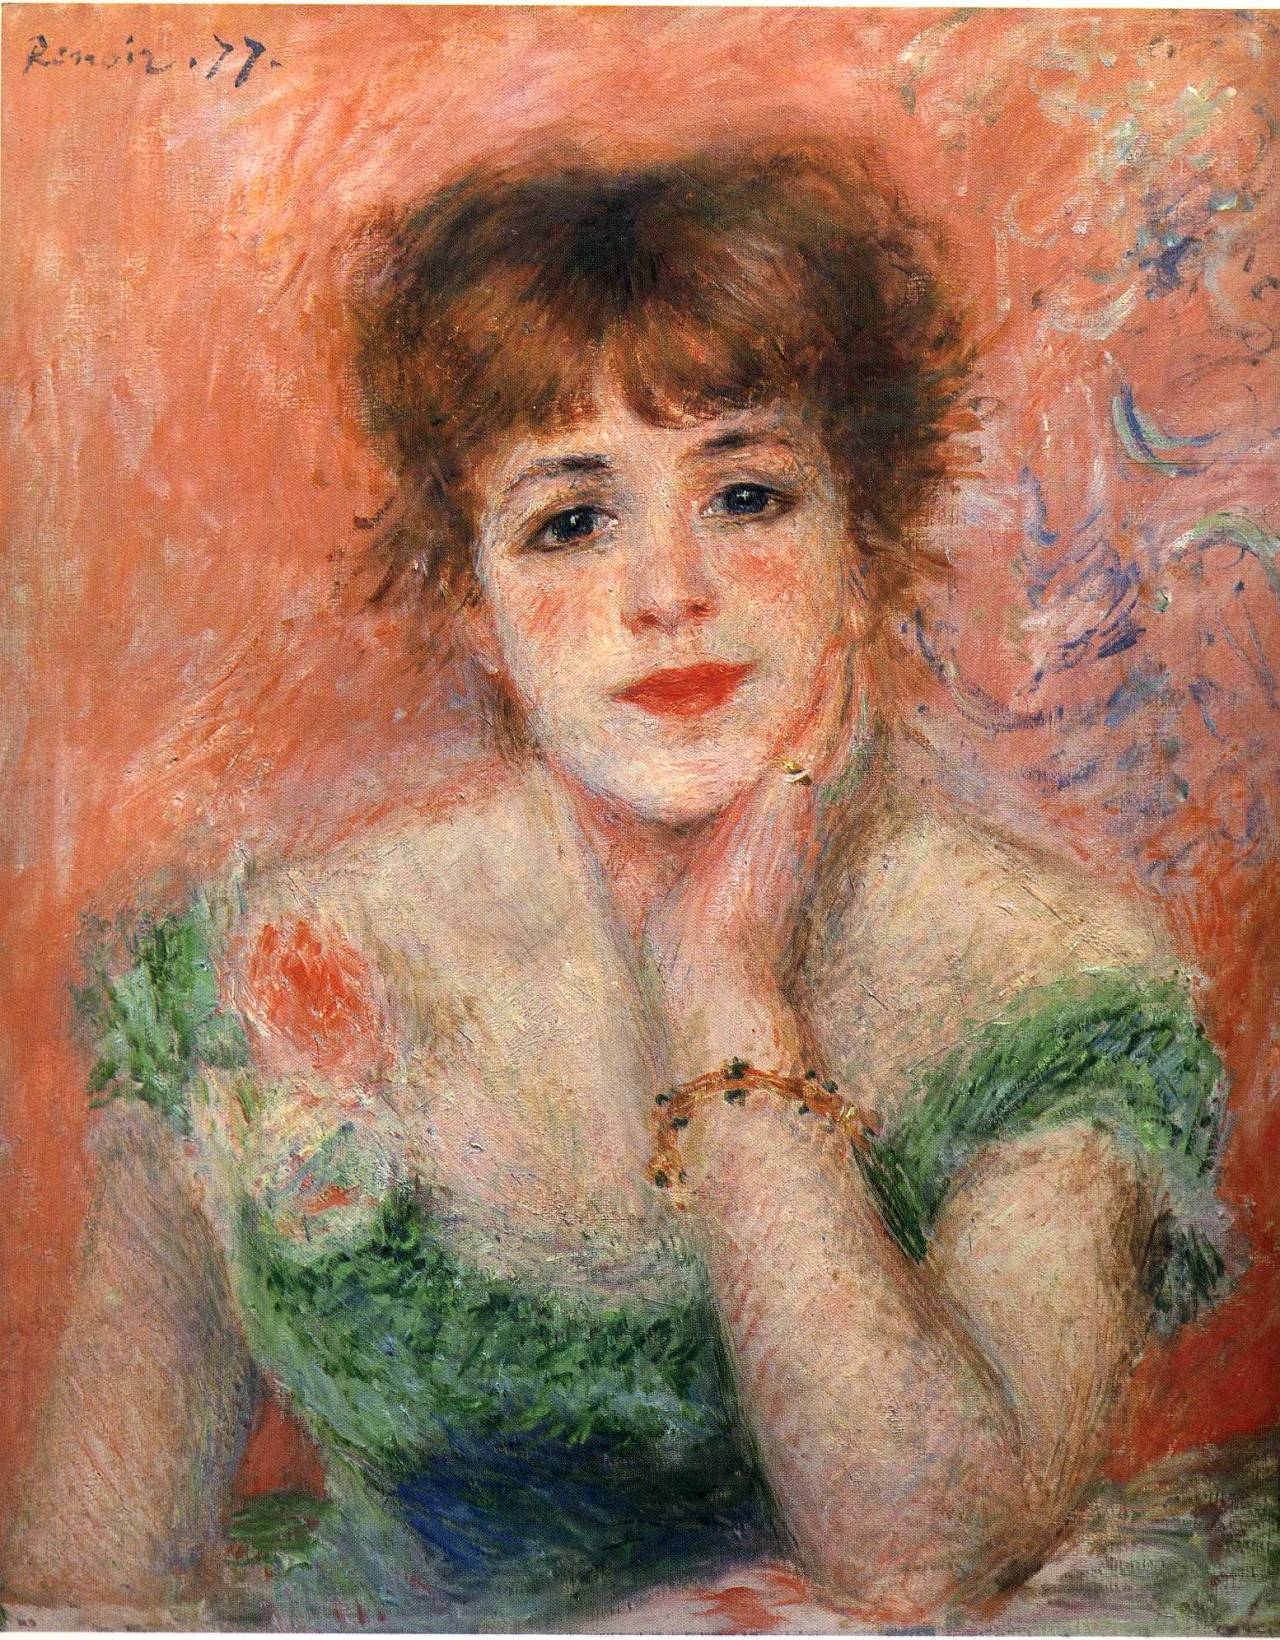 Pierre-Auguste RenoirSee more of the artist's work here: http://www.pierre-auguste-renoir.org/Follow me on Twitter: jemmacraig03Follow me on Instagram: jemmacraig